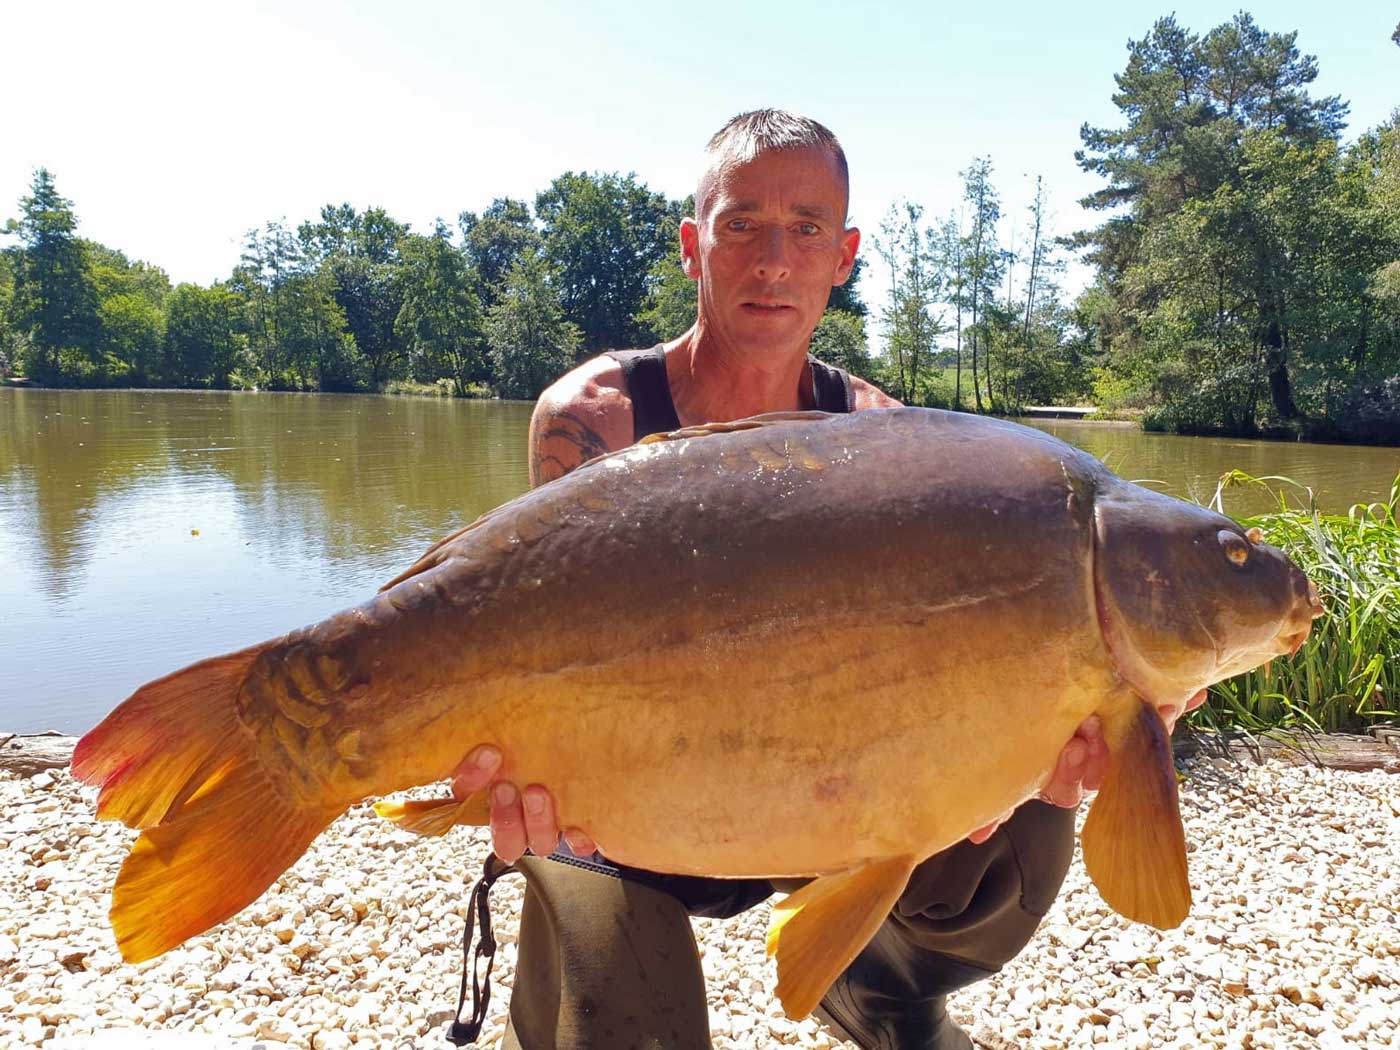 Lee with the Dark Knight at 35lbs